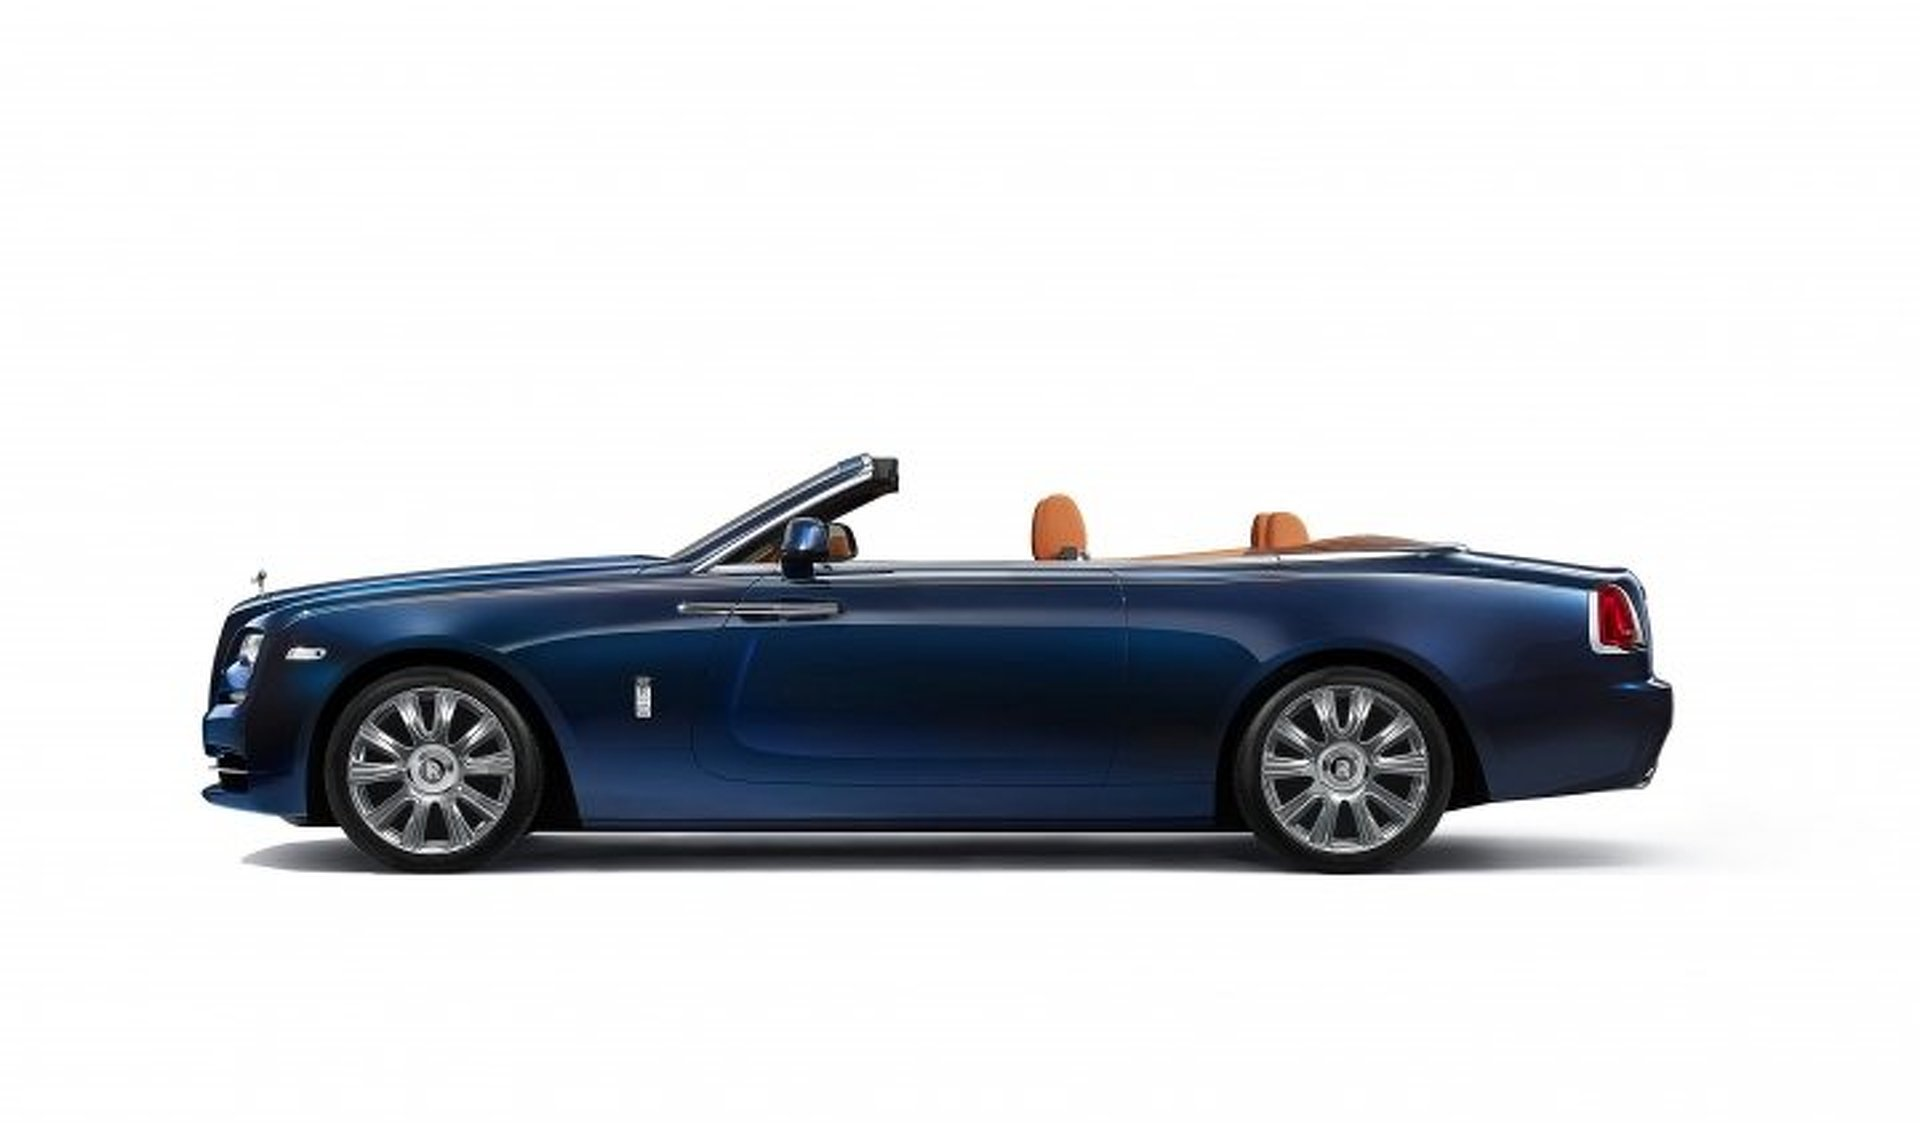 Rolls-Royce Dawn Is the All-New, Four-Seat, Uber-Luxury Convertible